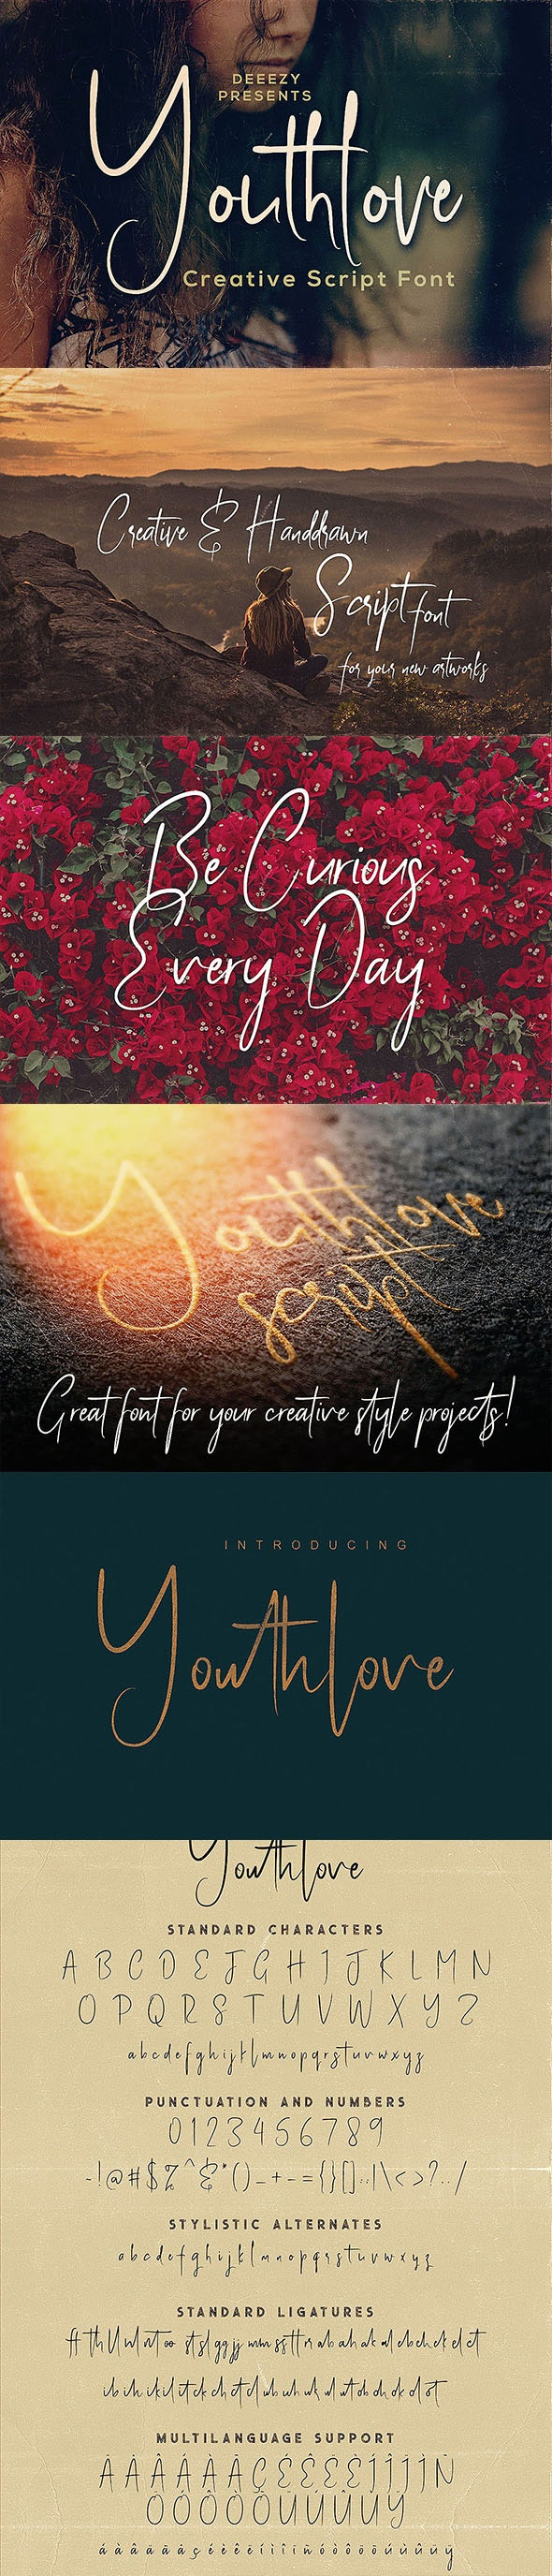 Youthlove Script Font - Calligraphy Script